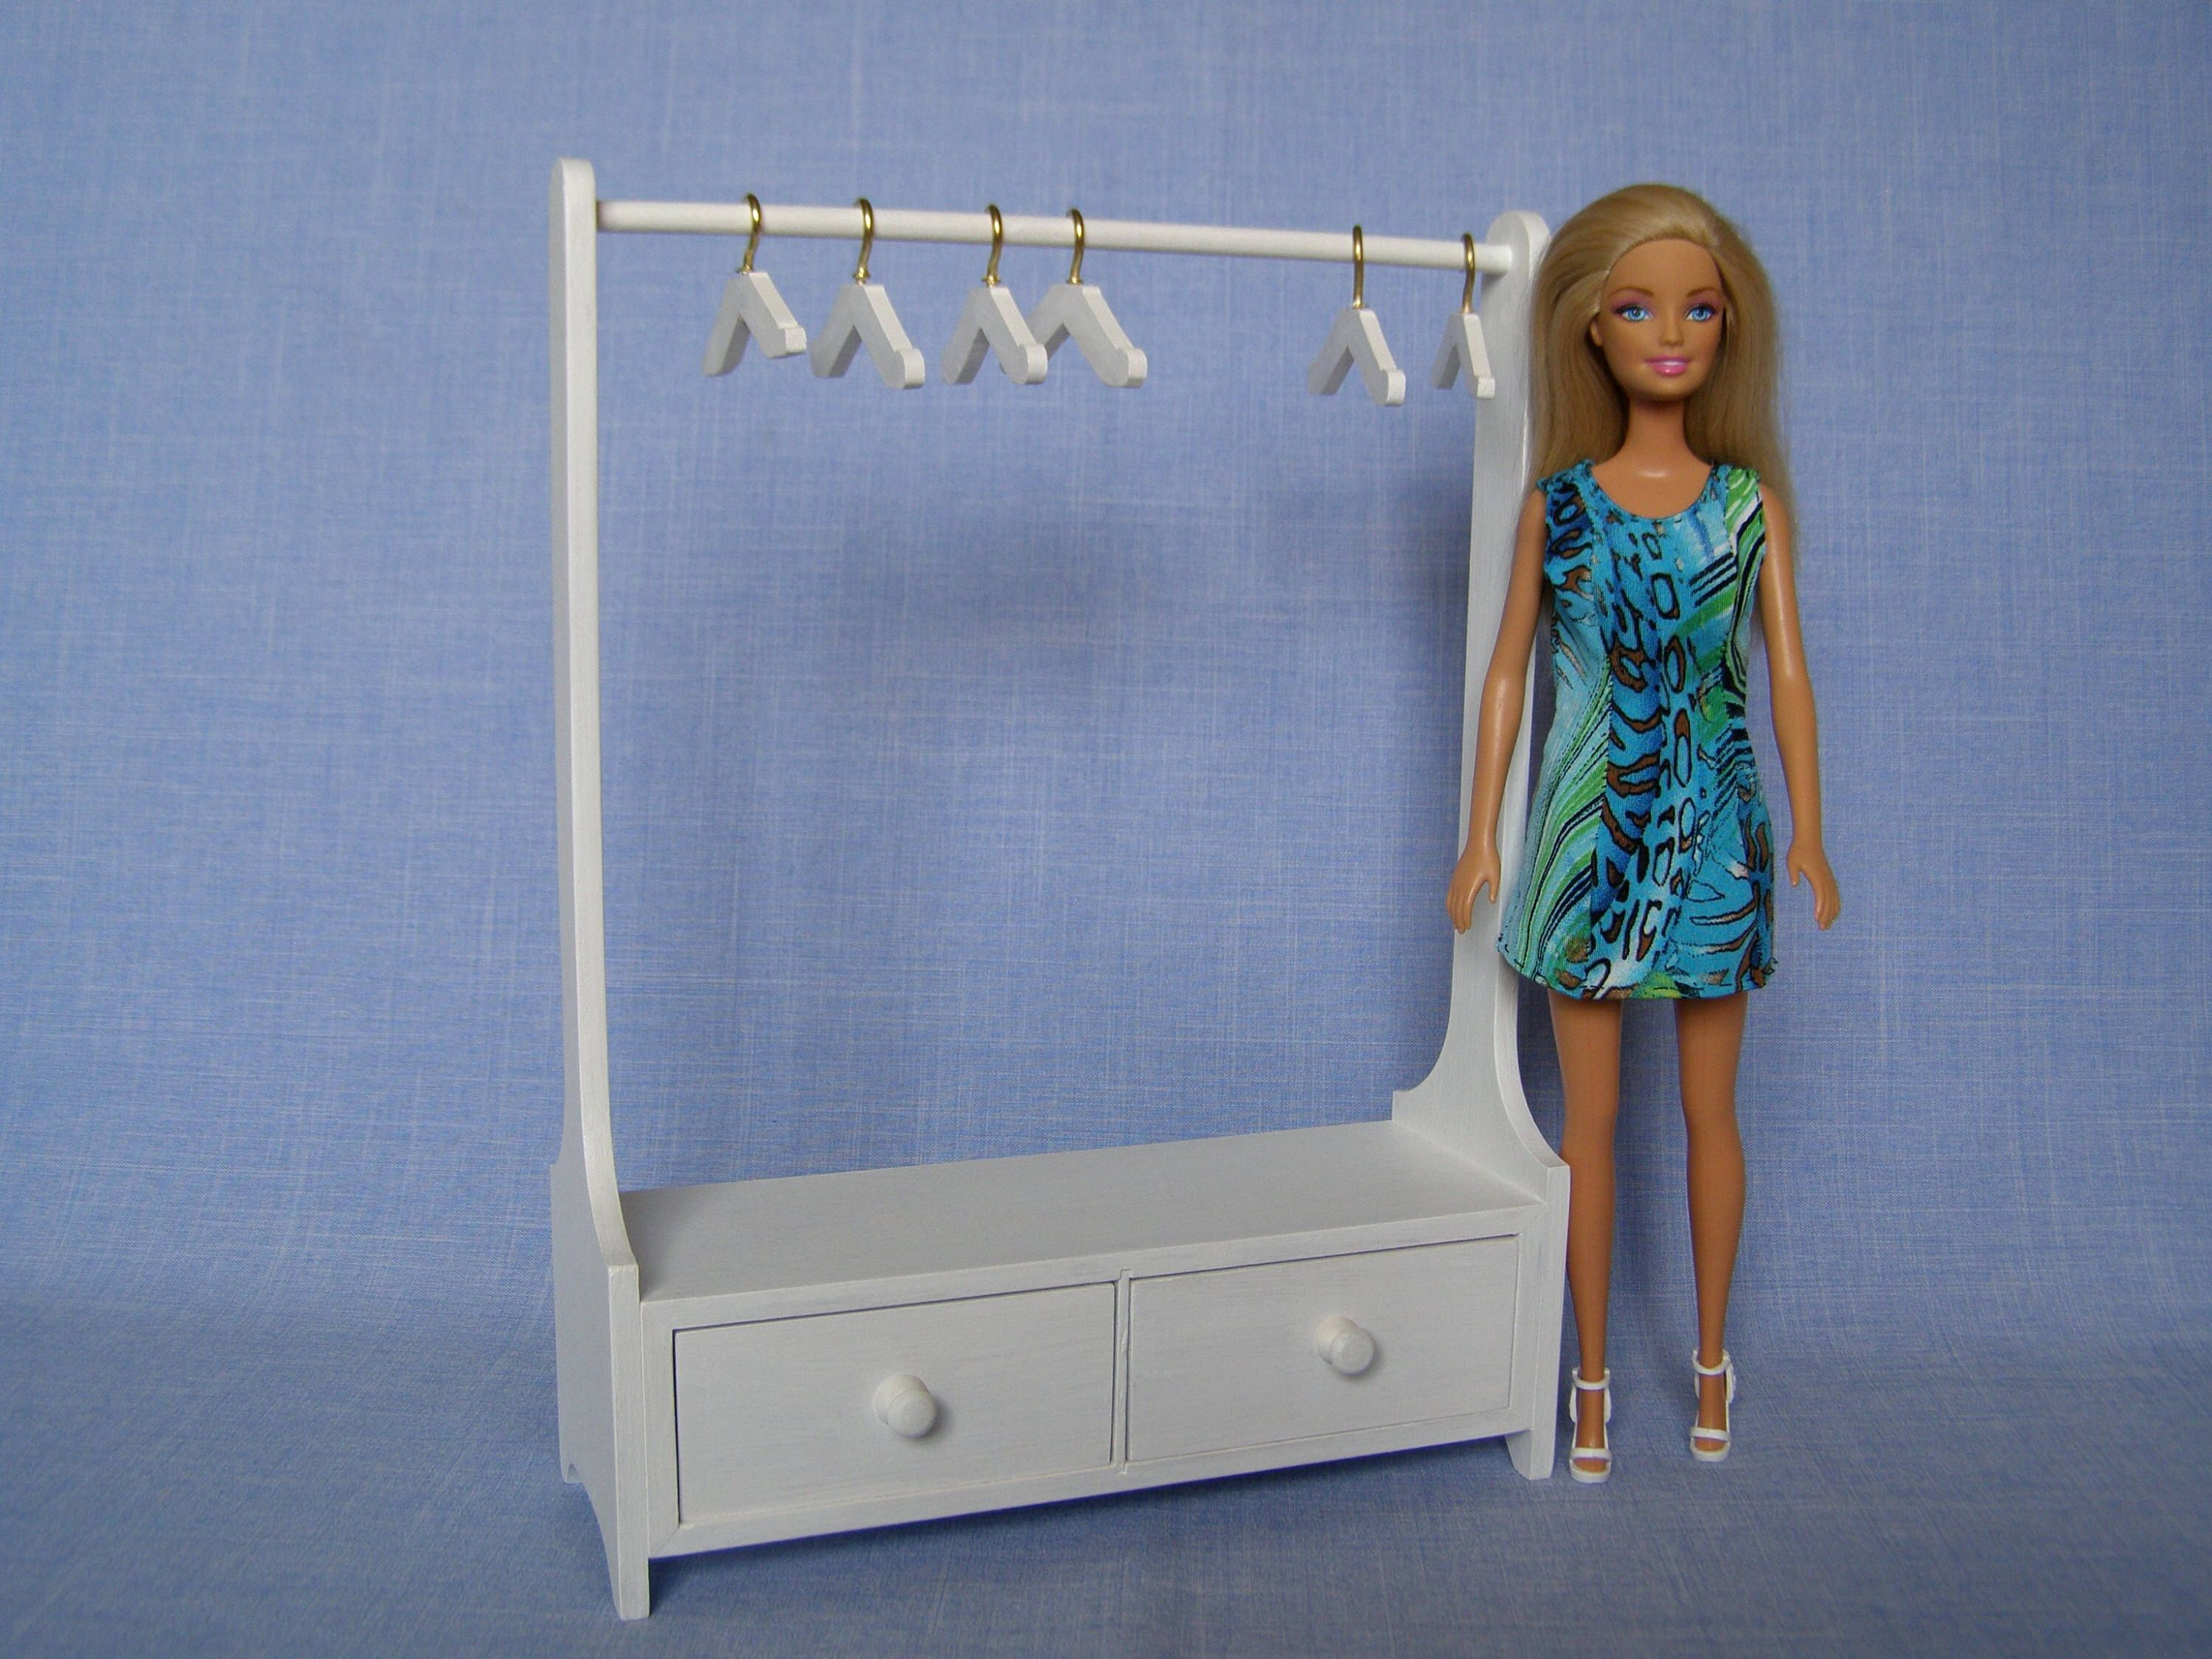 16 scale Doll Clothes Rack for 12 Inch doll/ Handmade